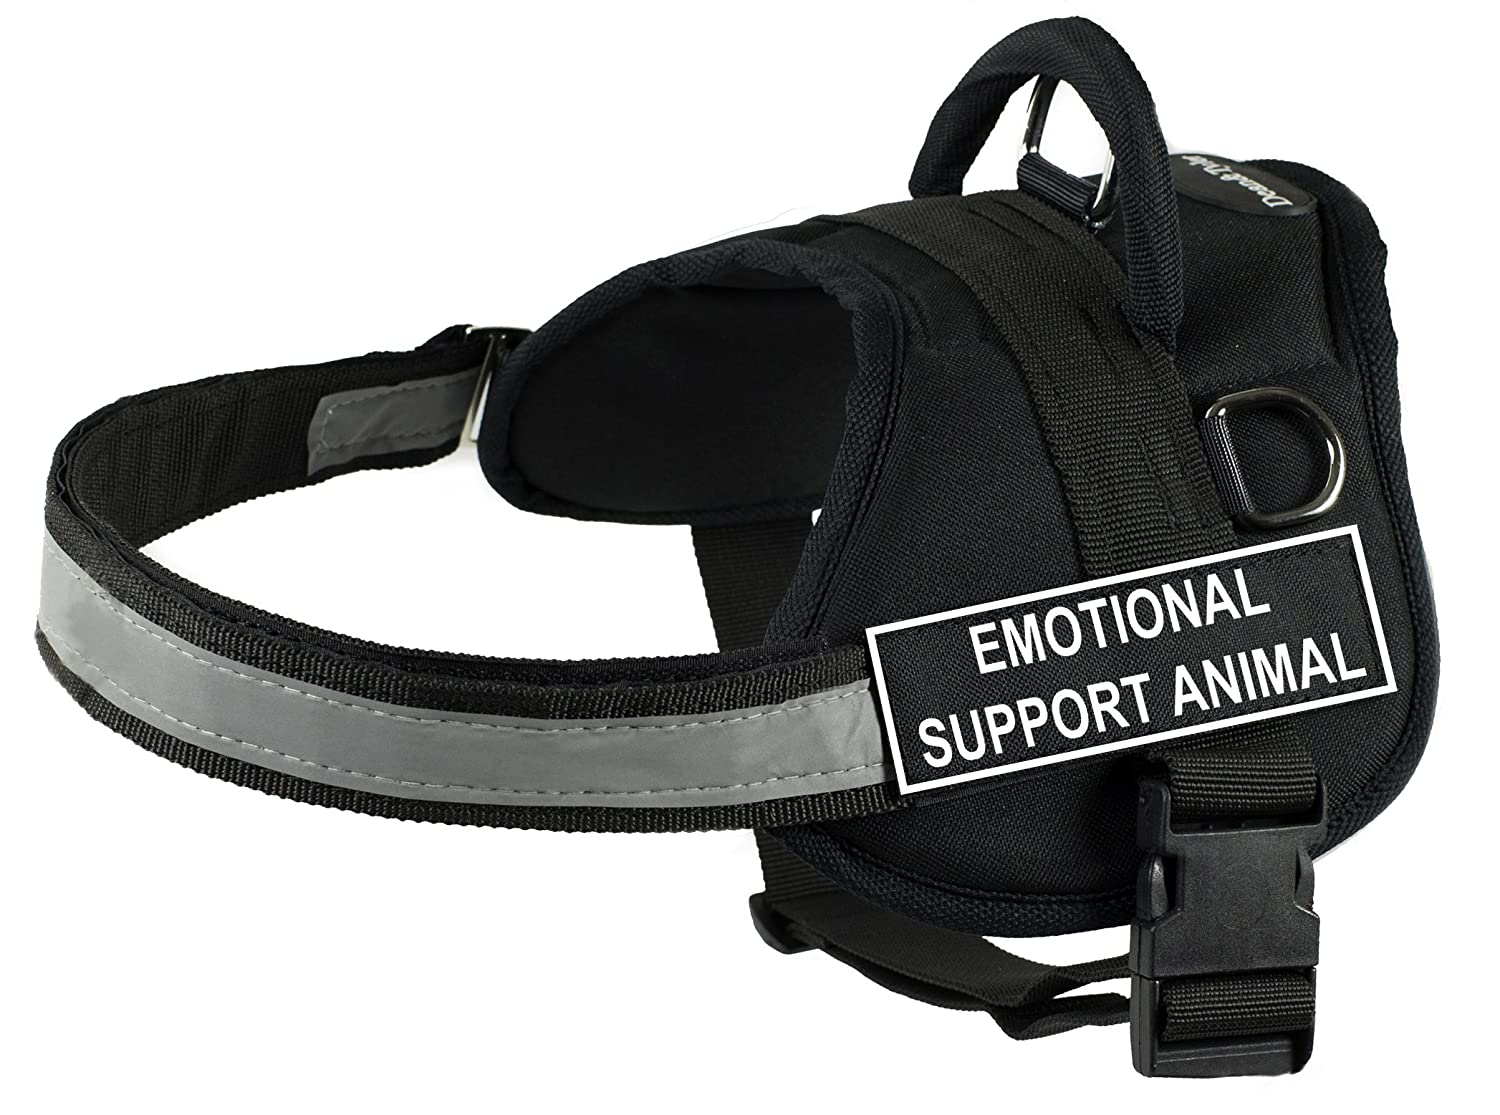 Dean & Tyler Works Harness, Emotional Support Animal, Medium-Fits Girth, 71cm to 97cm, Black White